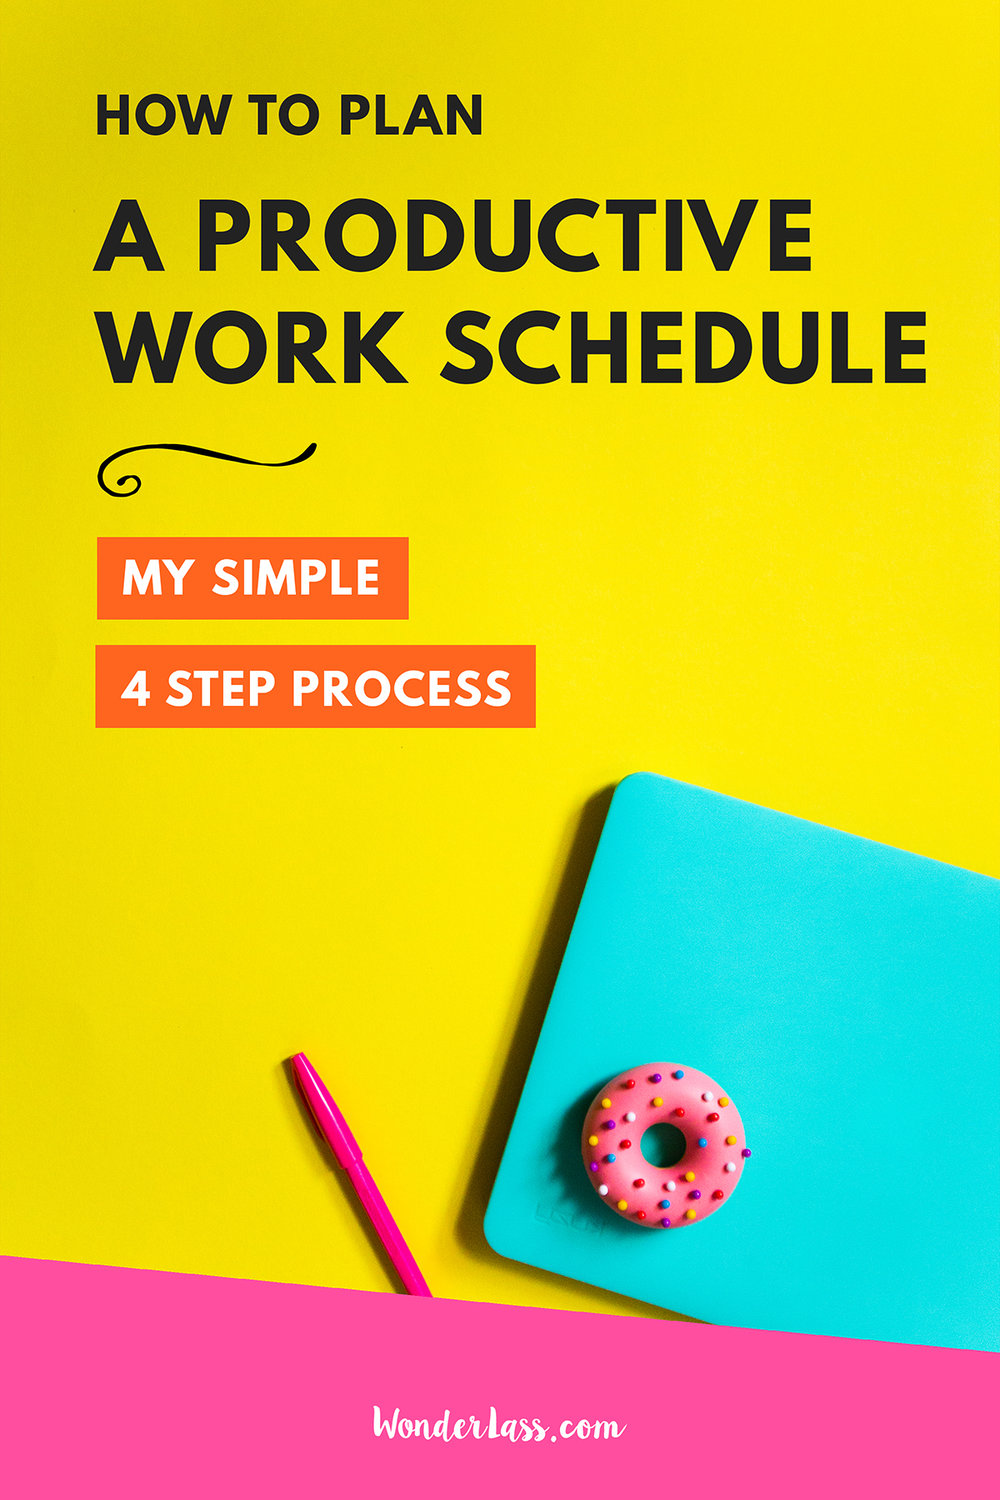 how to plan a productive work schedule.jpg